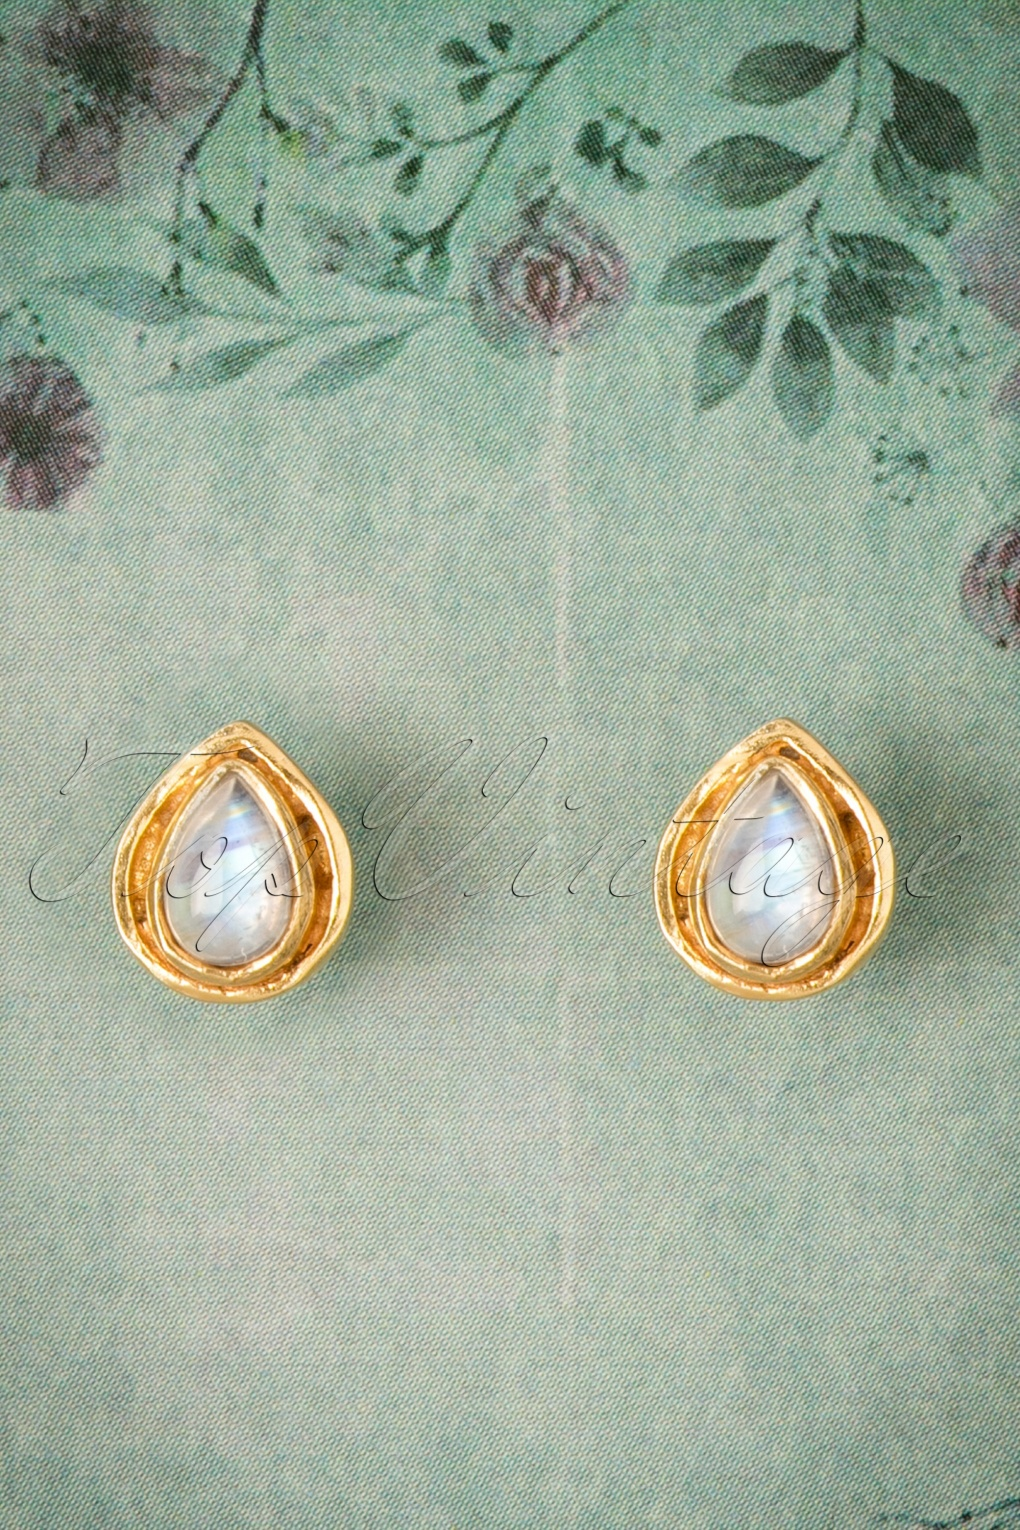 1960s Costume Jewelry – 1960s Style Jewelry 60s White Opal Secret Eye Earstuds in Gold £31.42 AT vintagedancer.com